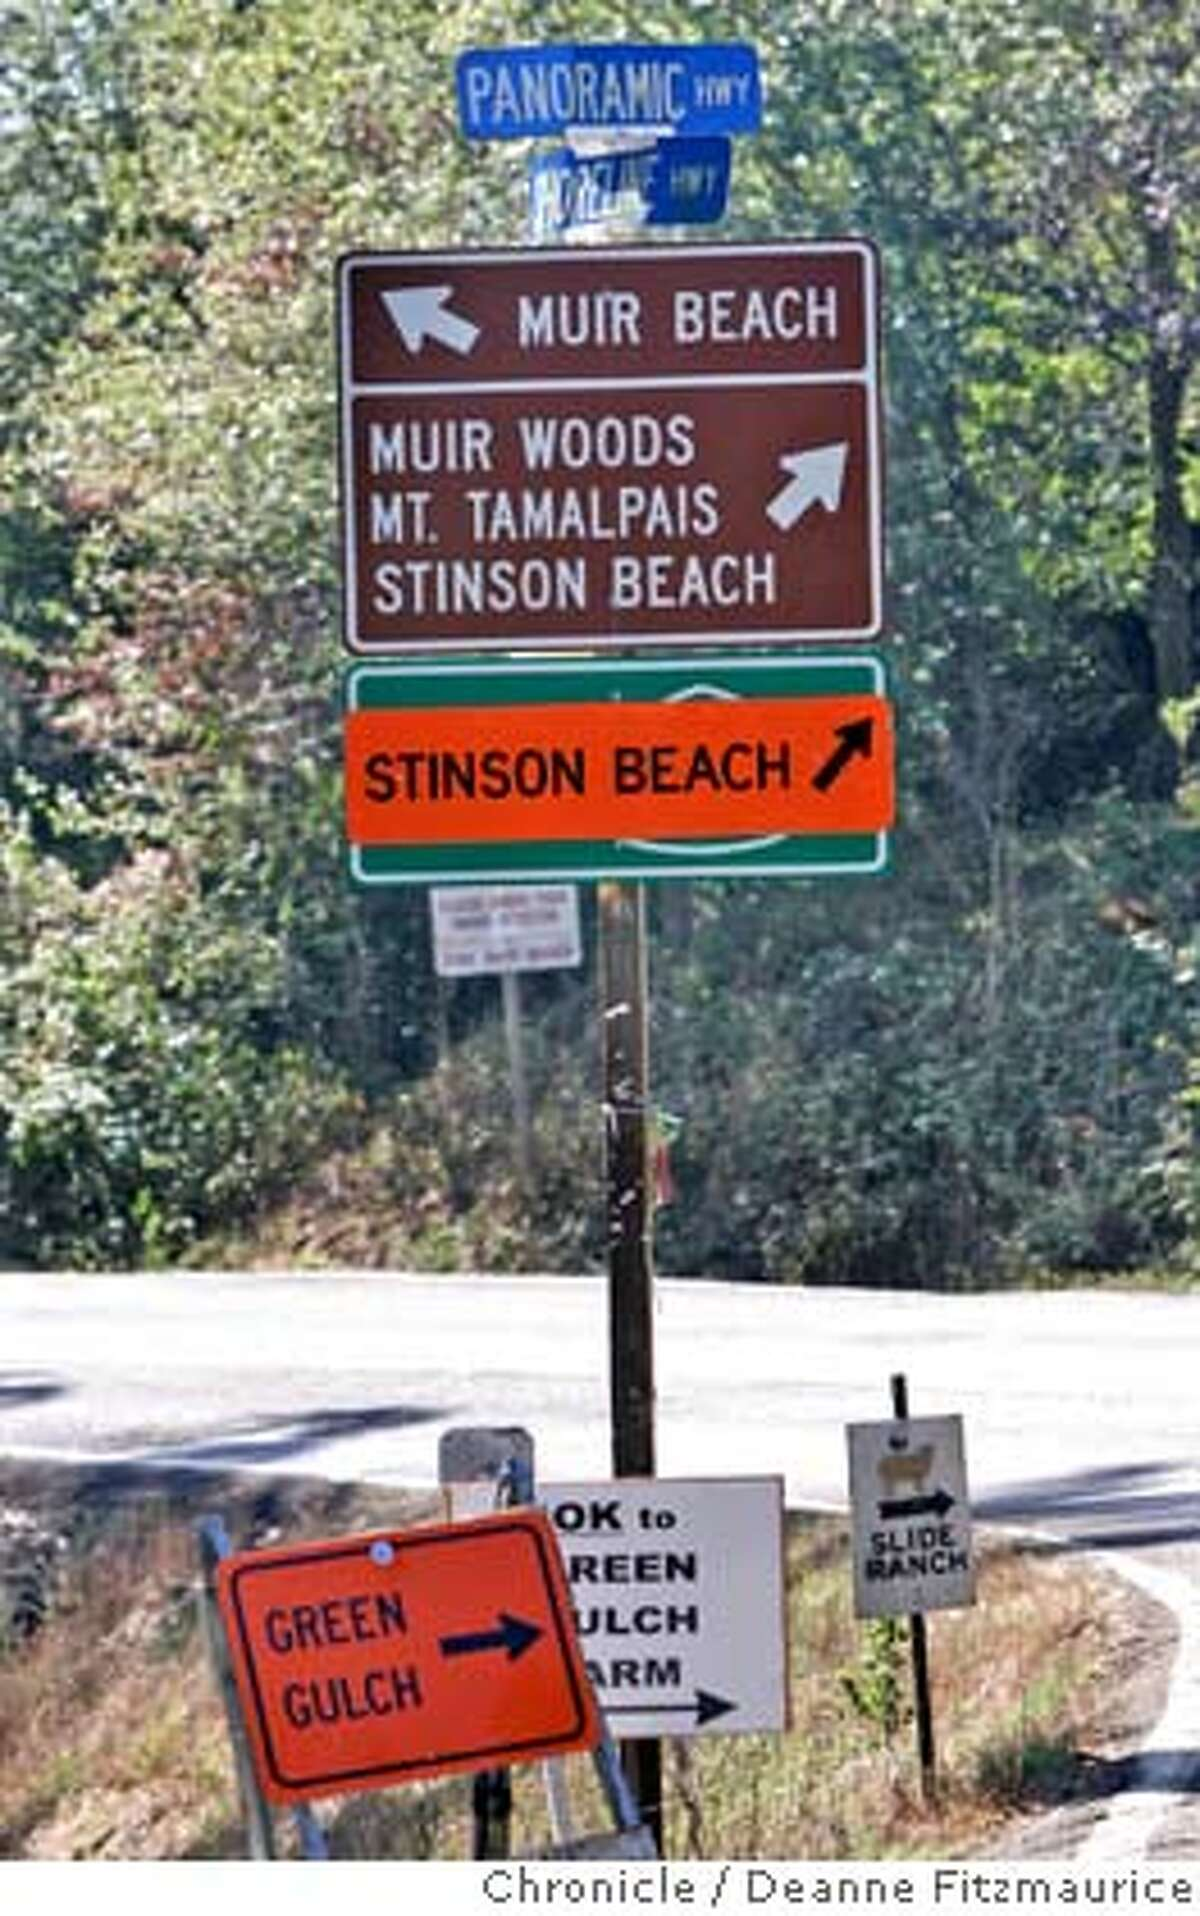 stinson_002_df.JPG Detour sign to Stinson Beach. Caltrans has closed a section of Highway 1 in Marin County for road repairs. Deanne Fitzmaurice / San Francisco Chronicle Ran on: 09-24-2005 Baja Gov. Eugenio Elorduy with Gov. Arnold Schwarzenegger Ran on: 09-24-2005 Baja Gov. Eugenio Elorduy with Gov. Arnold Schwarzenegger